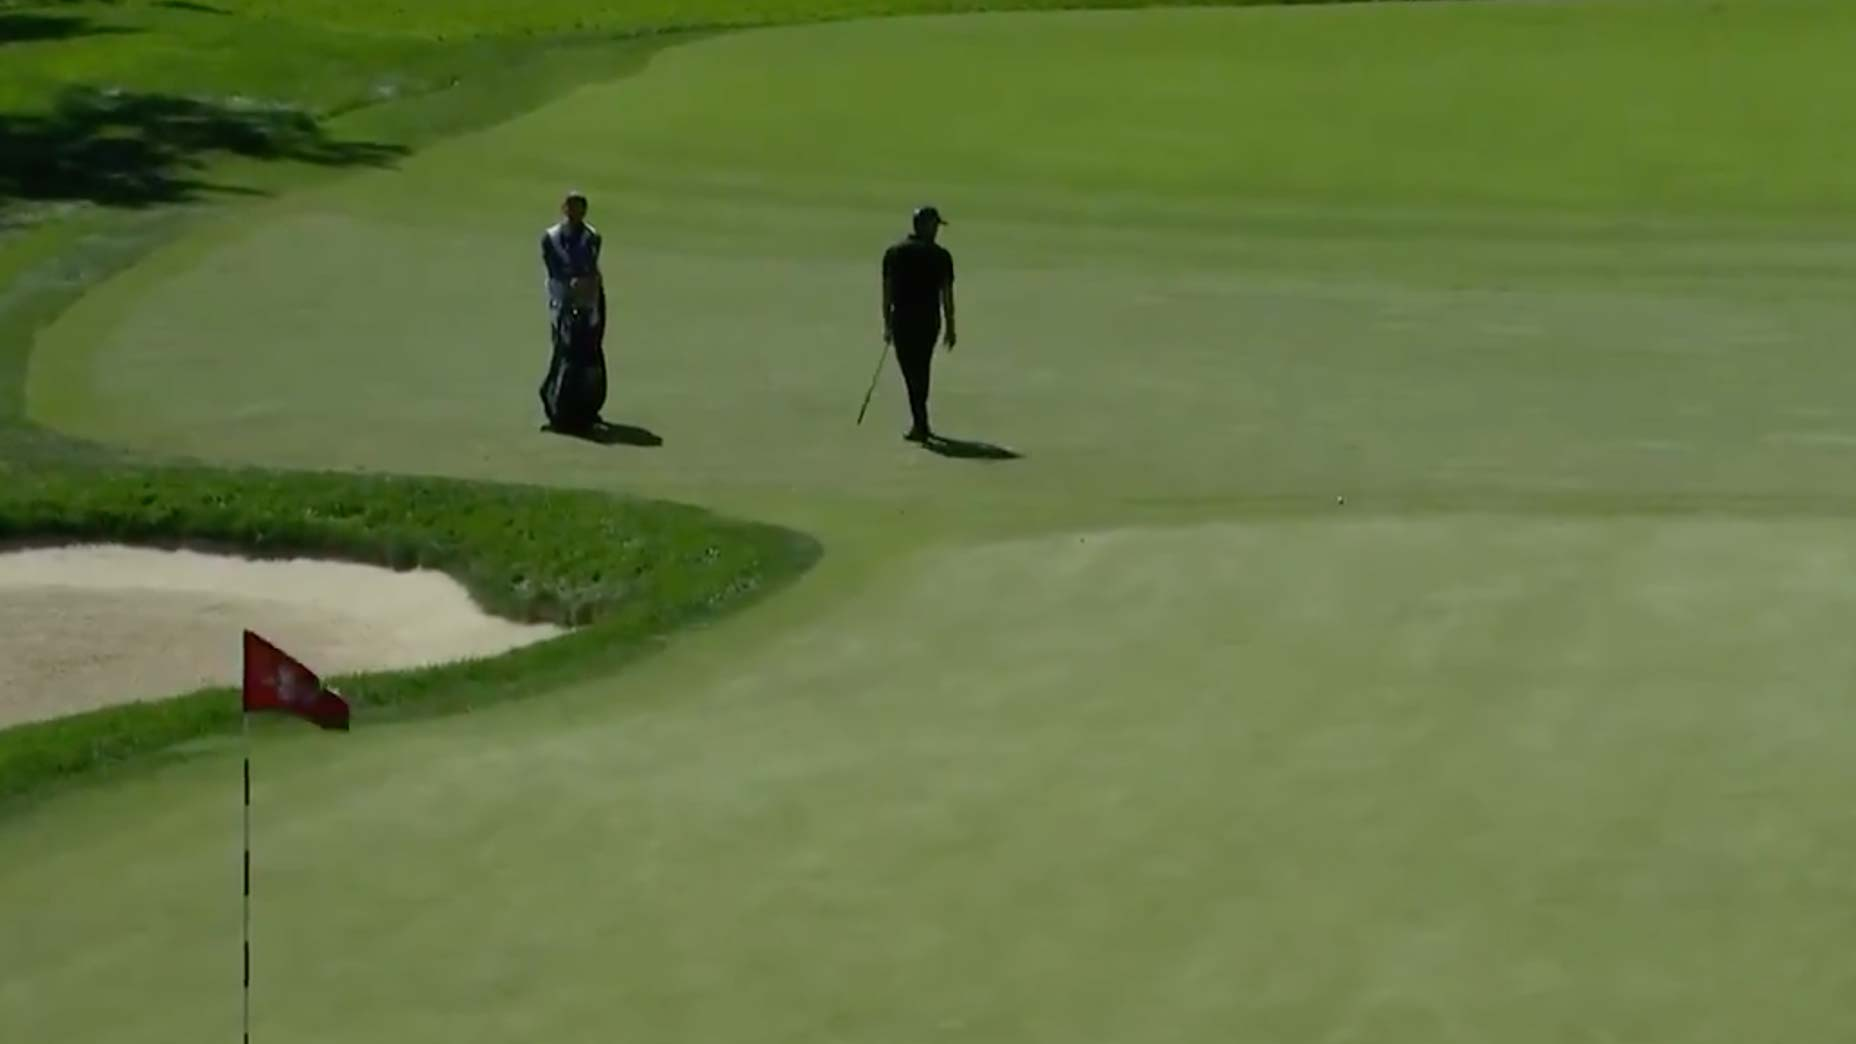 WATCH: Patrick Cantlay's shot hits flagstick, gets the absolute worst break